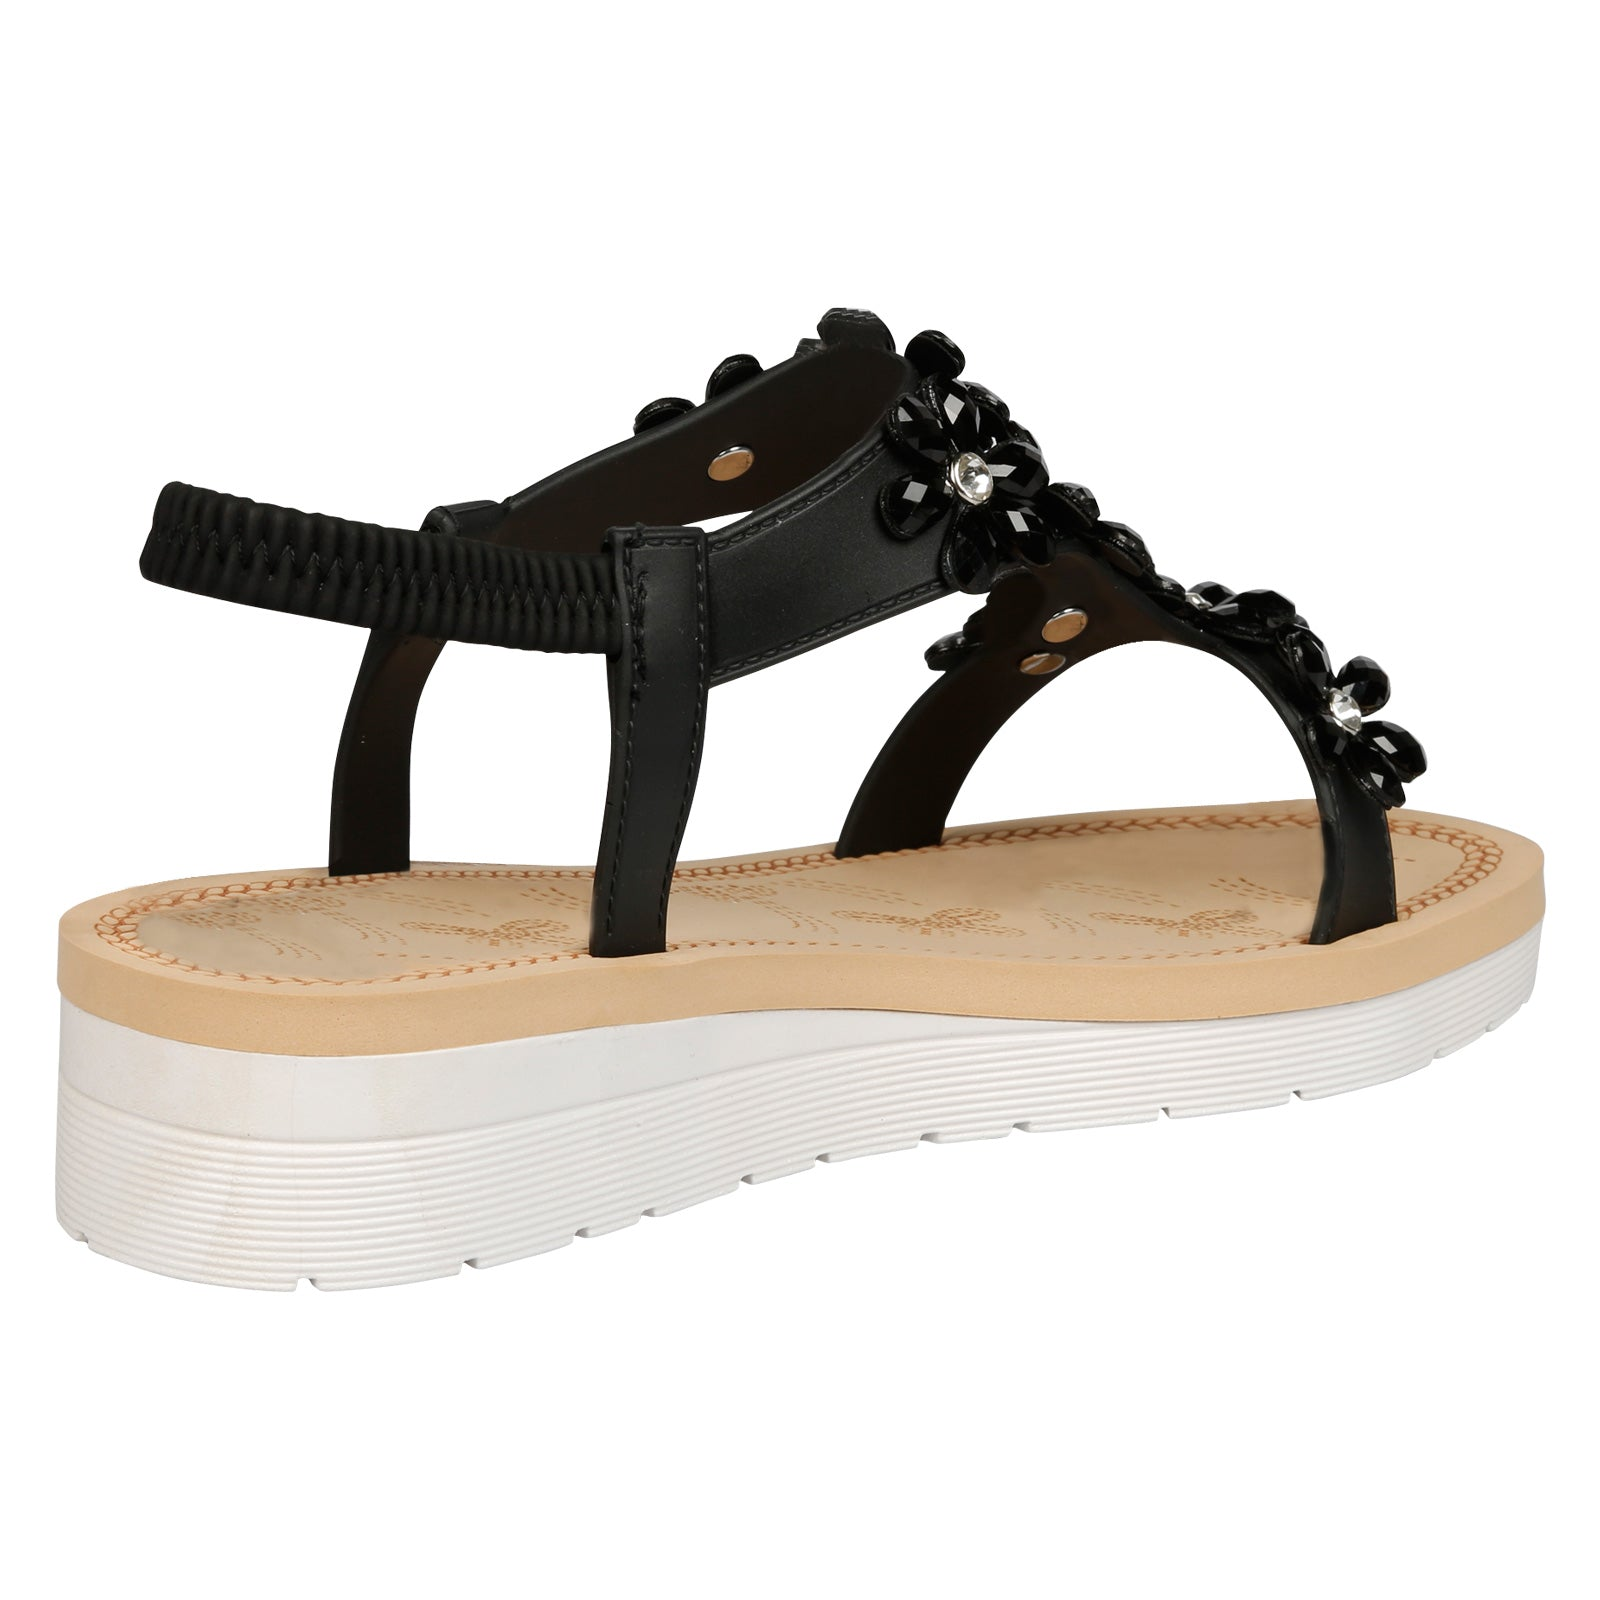 Demeter Flatform Floral Jewel Sandals in Black Faux Leather - Feet First Fashion